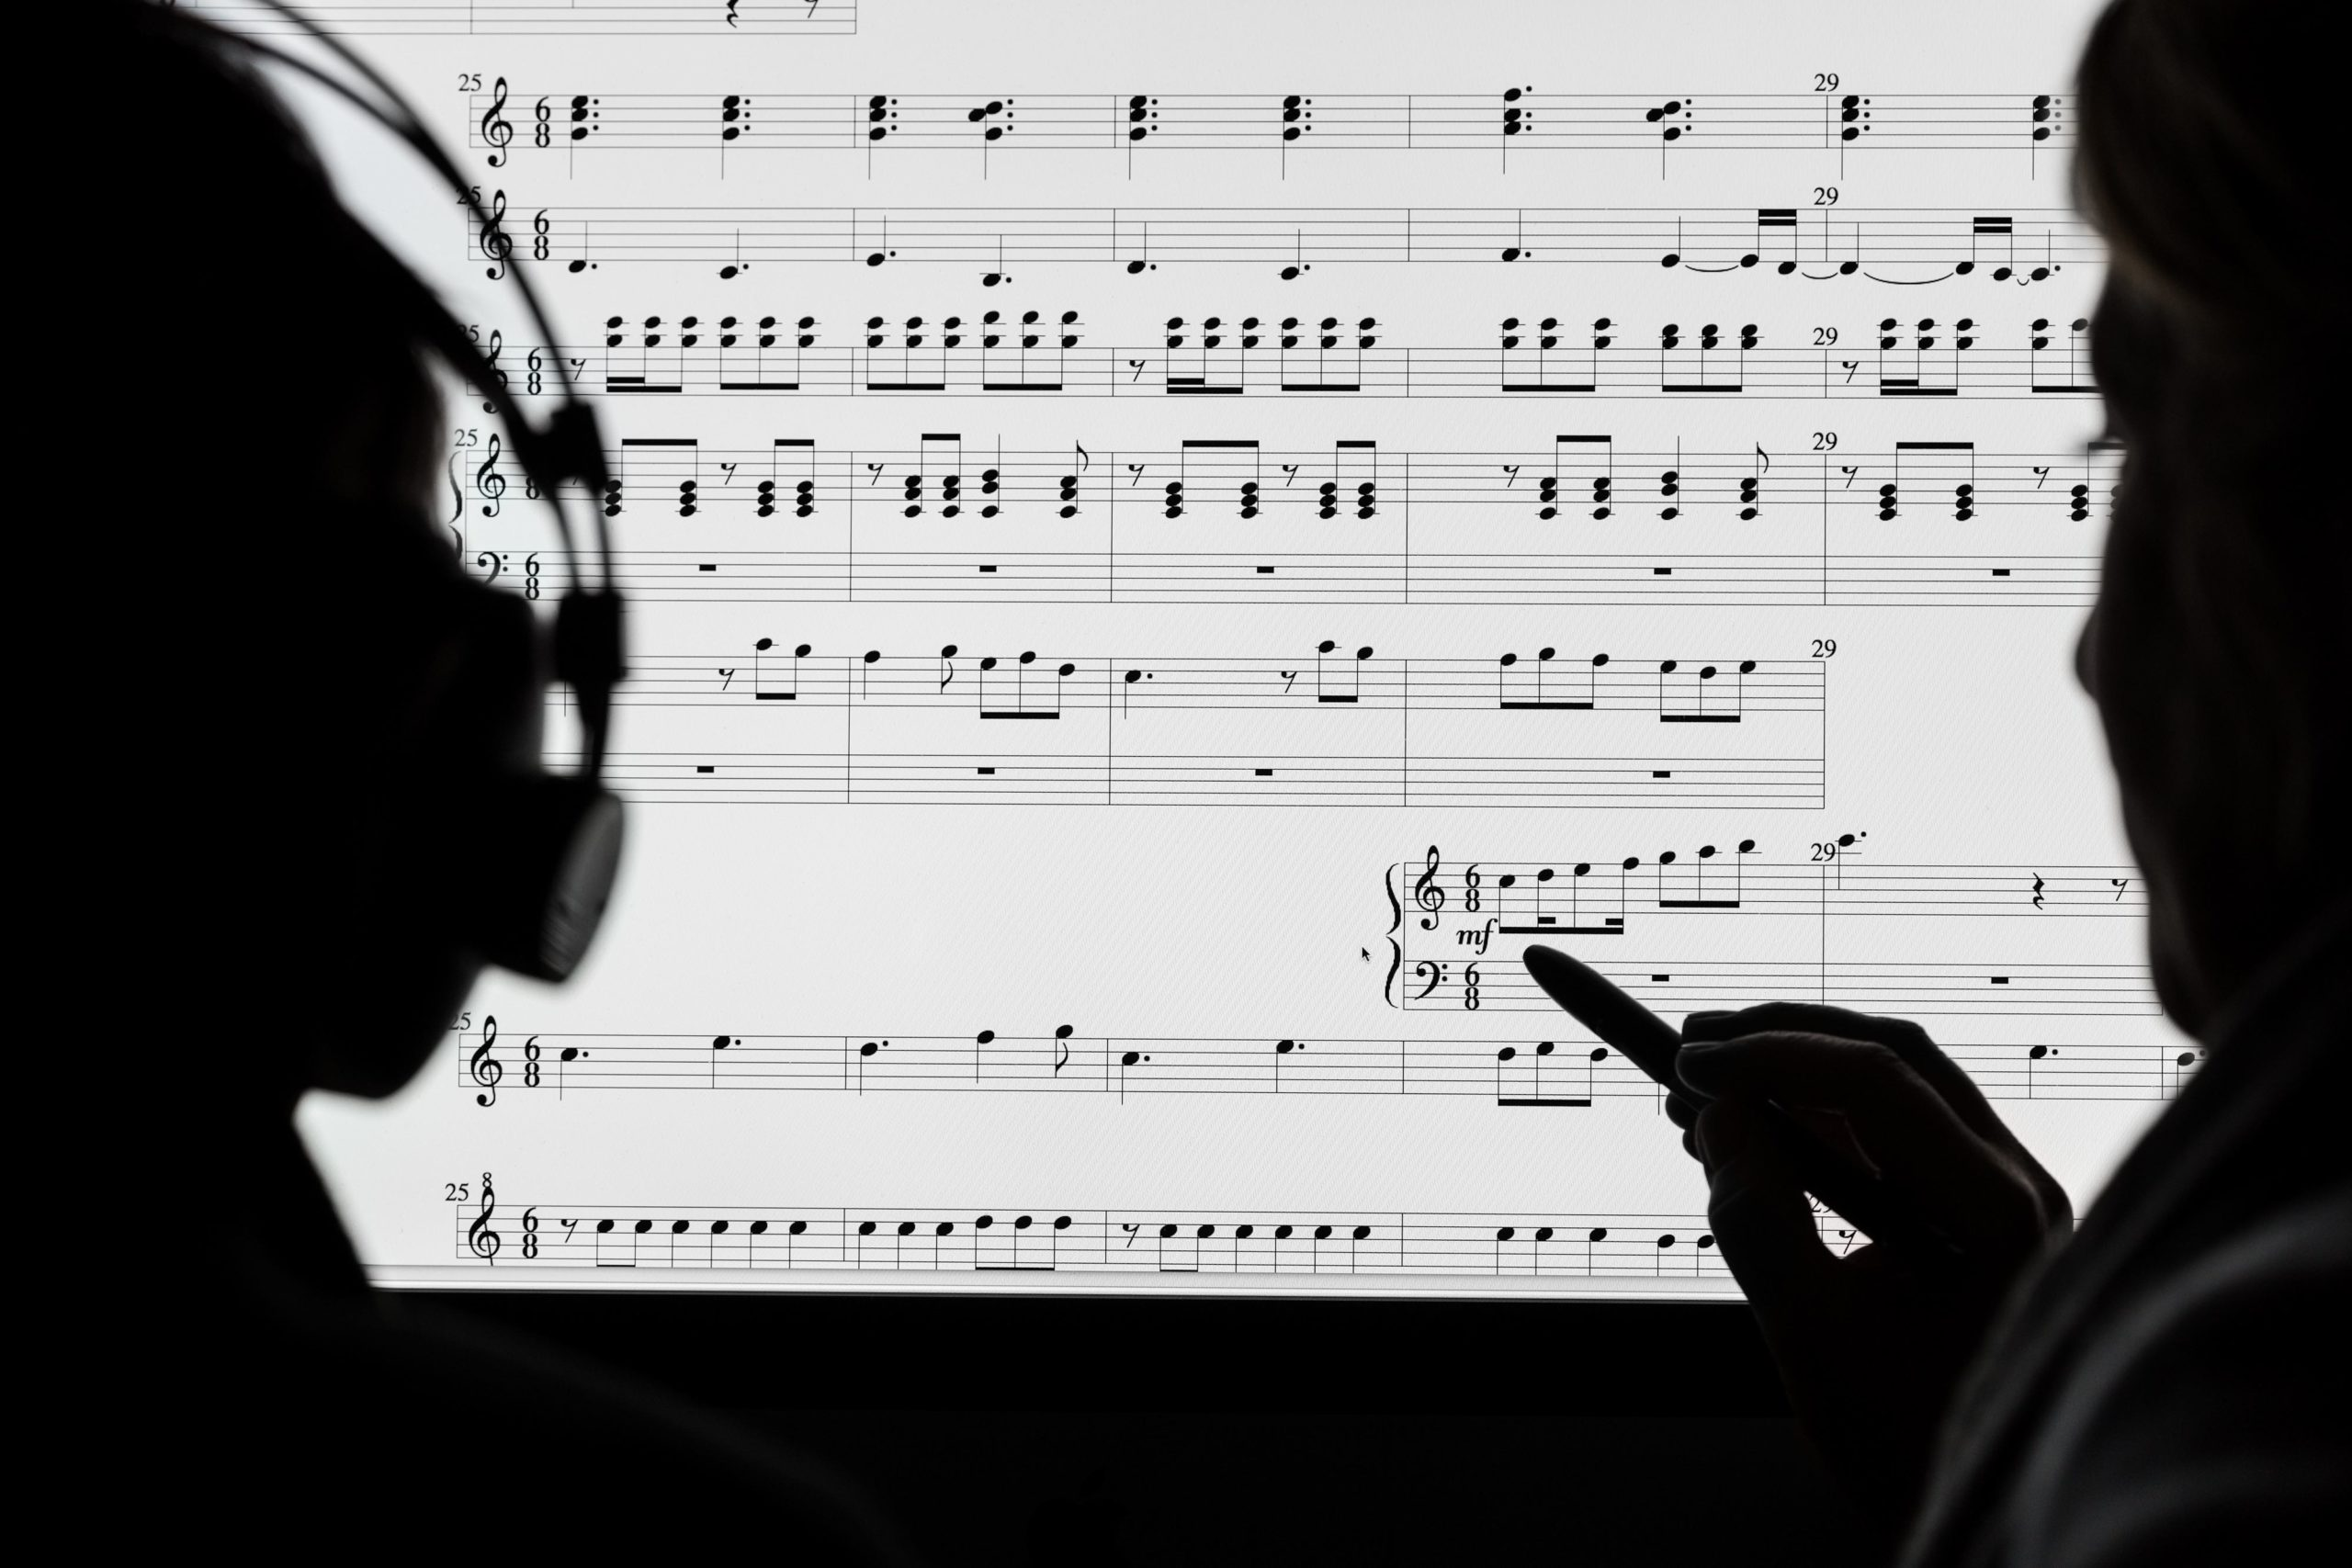 best-ways-to-learn-music-notation-software